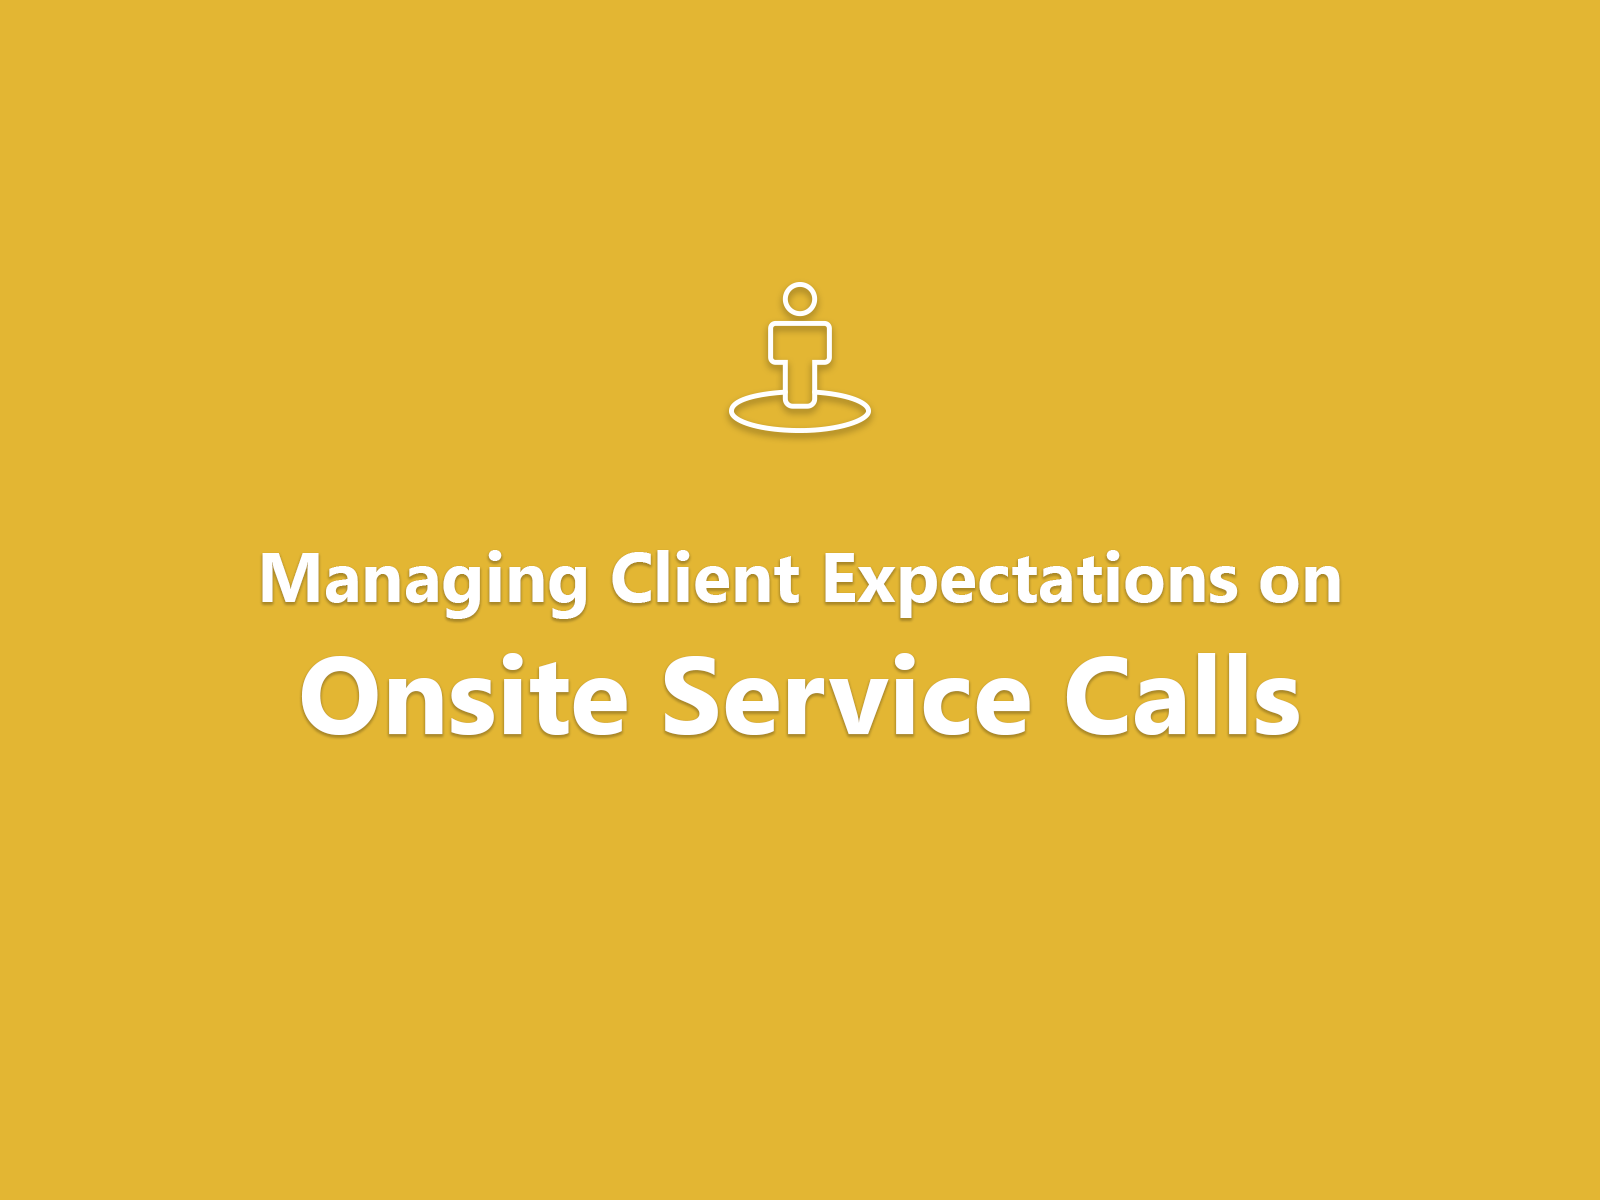 DCS_course_featured_IMG_1600x1200_onsite_service_calls.png